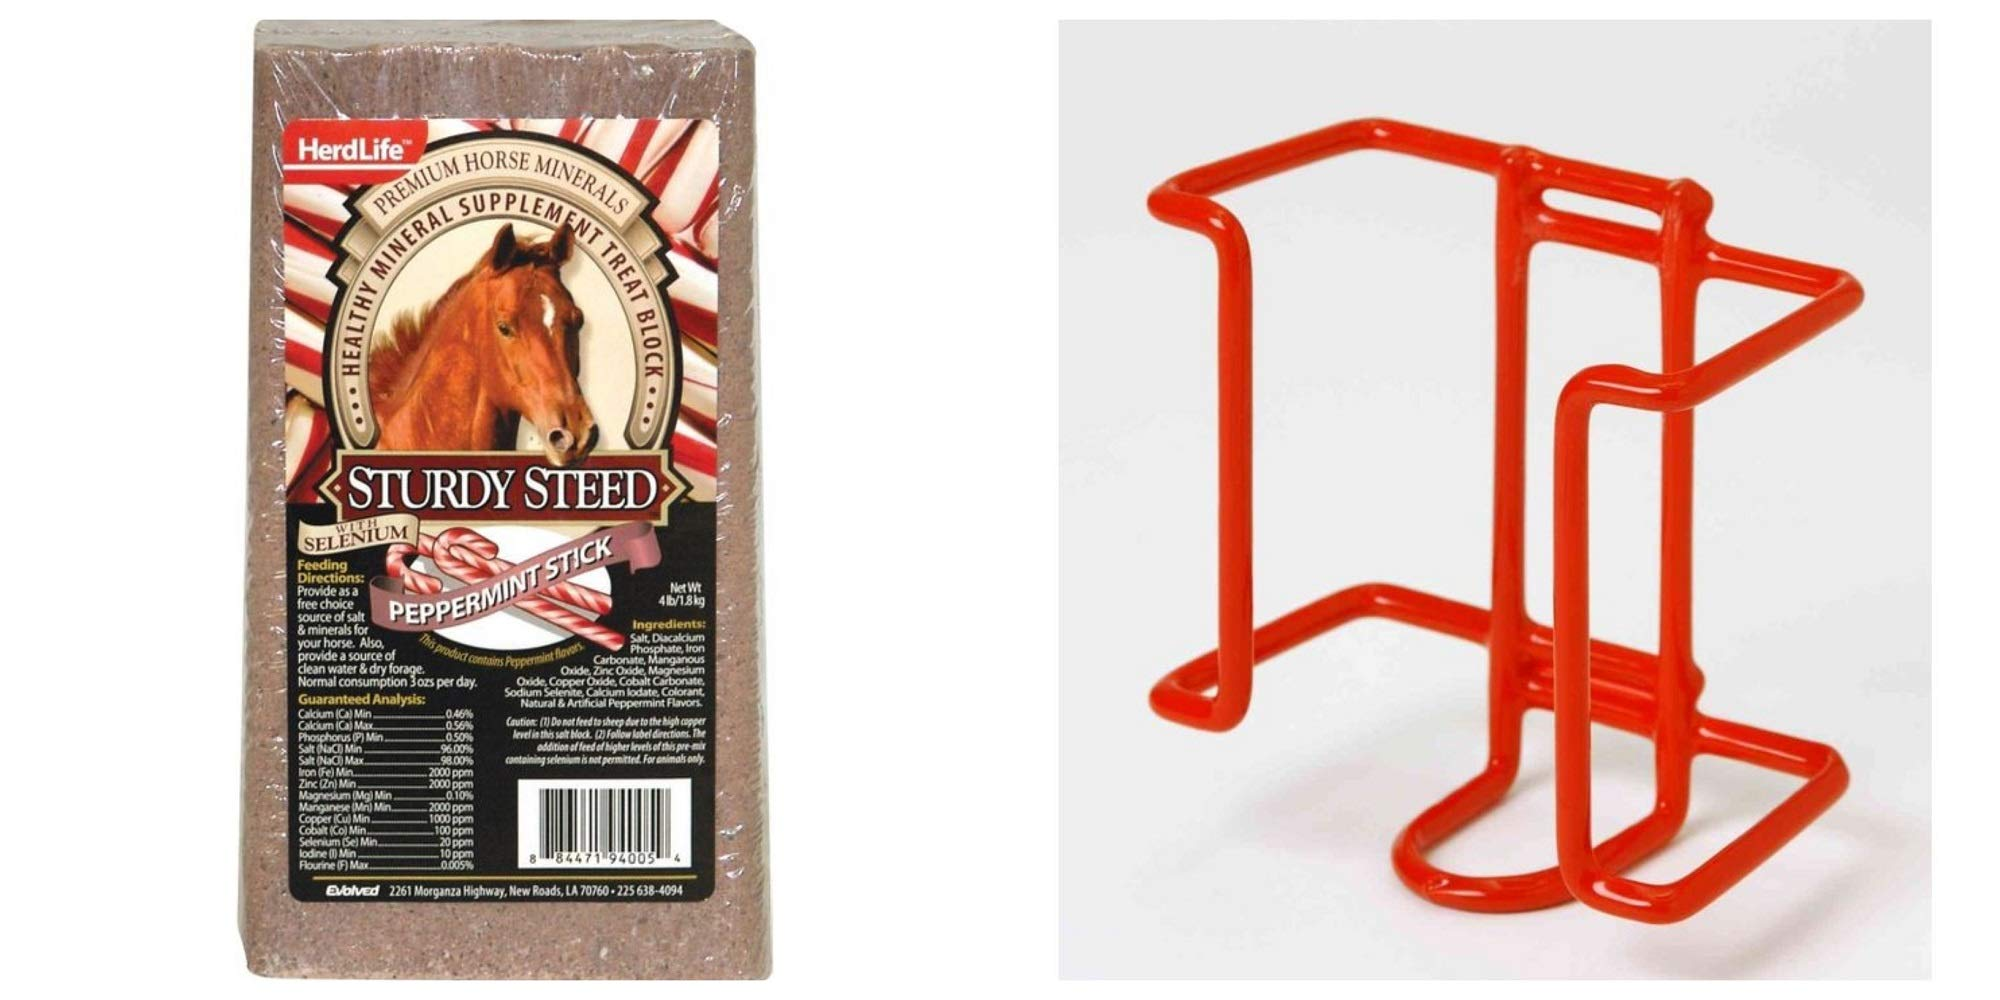 Herdlife Sturdy Steed Horse Mineral Salt Block with Selenium, Peppermint Flavor, 4 Lbs. + Little Giant 4-Pound Wire Salt Block Holder by Herdlife